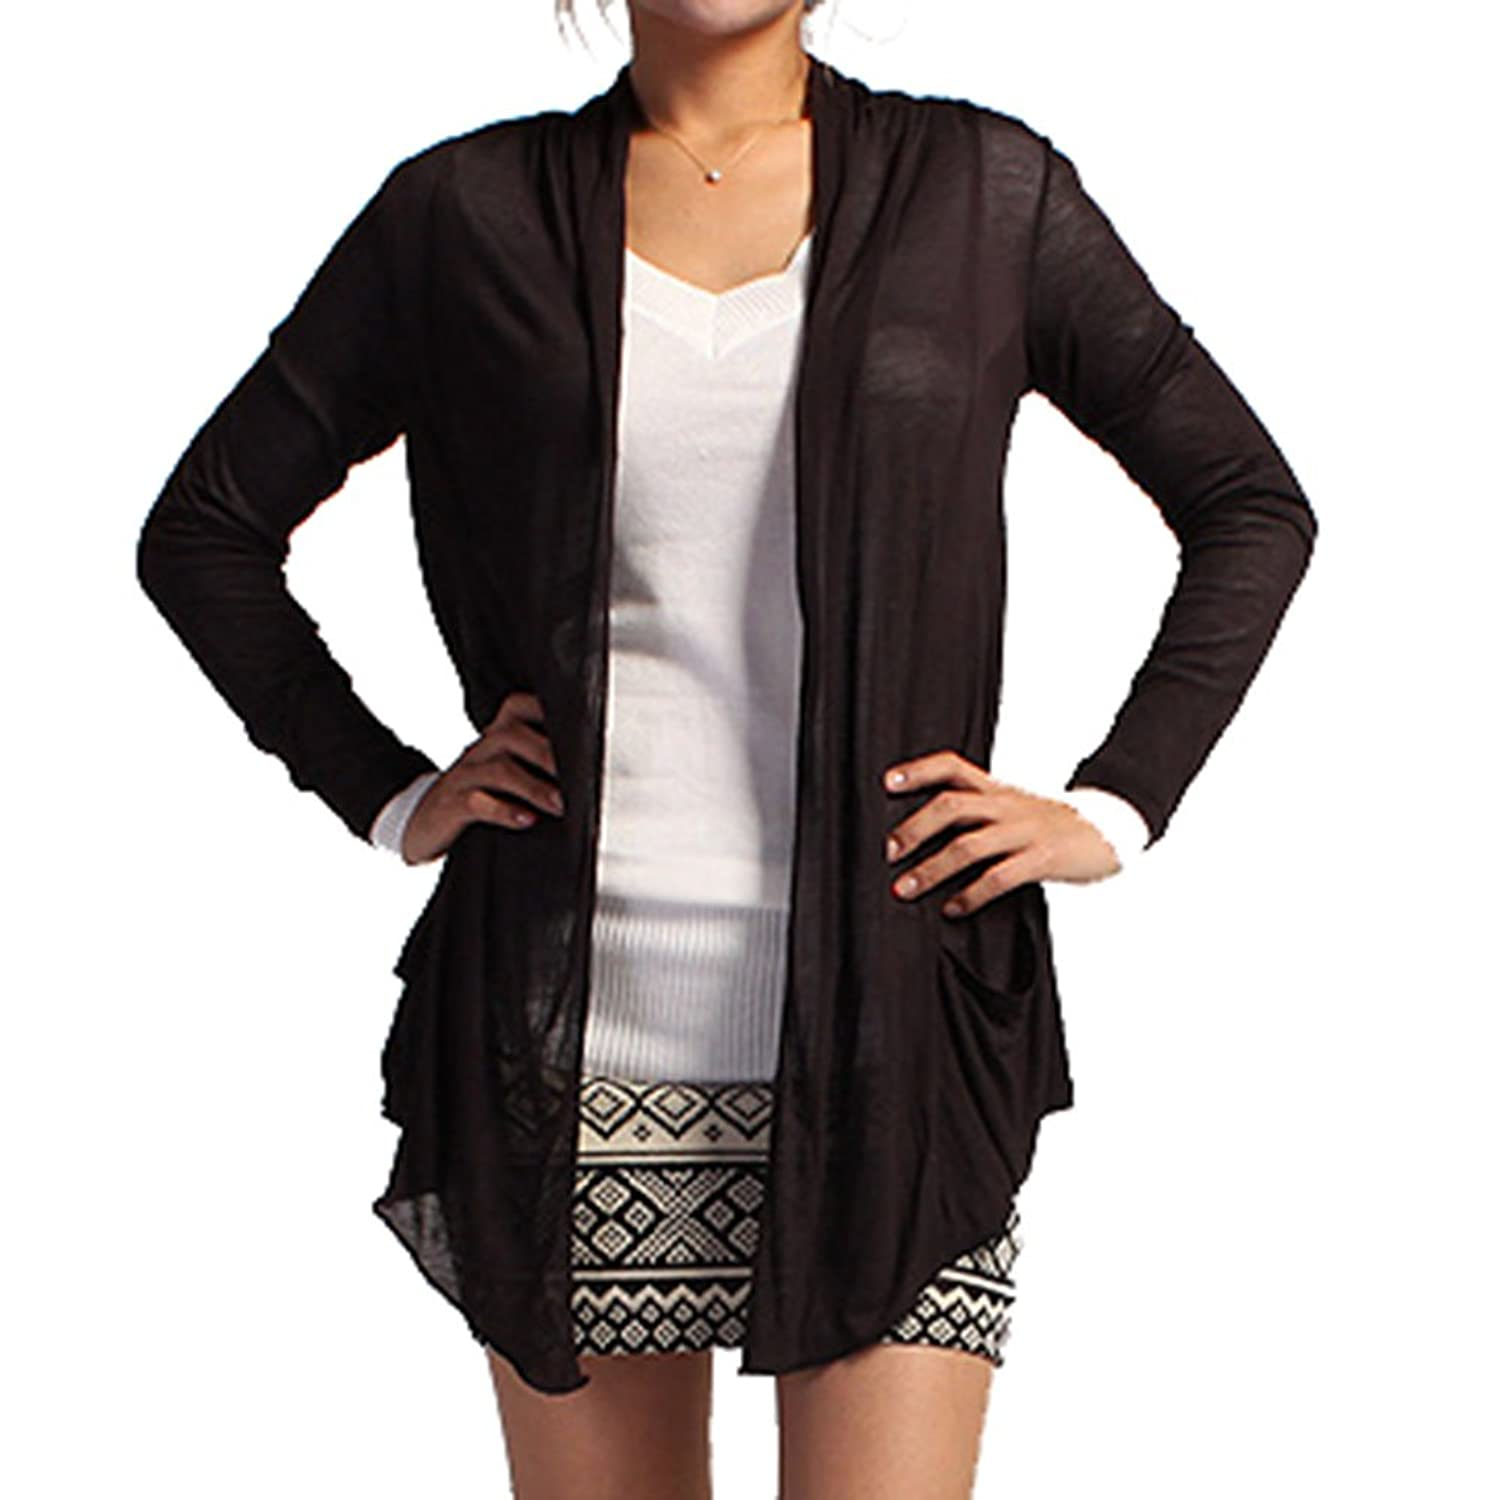 drapes cardigan markesha of thought rack threads fleece nordstrom product image shop black drape